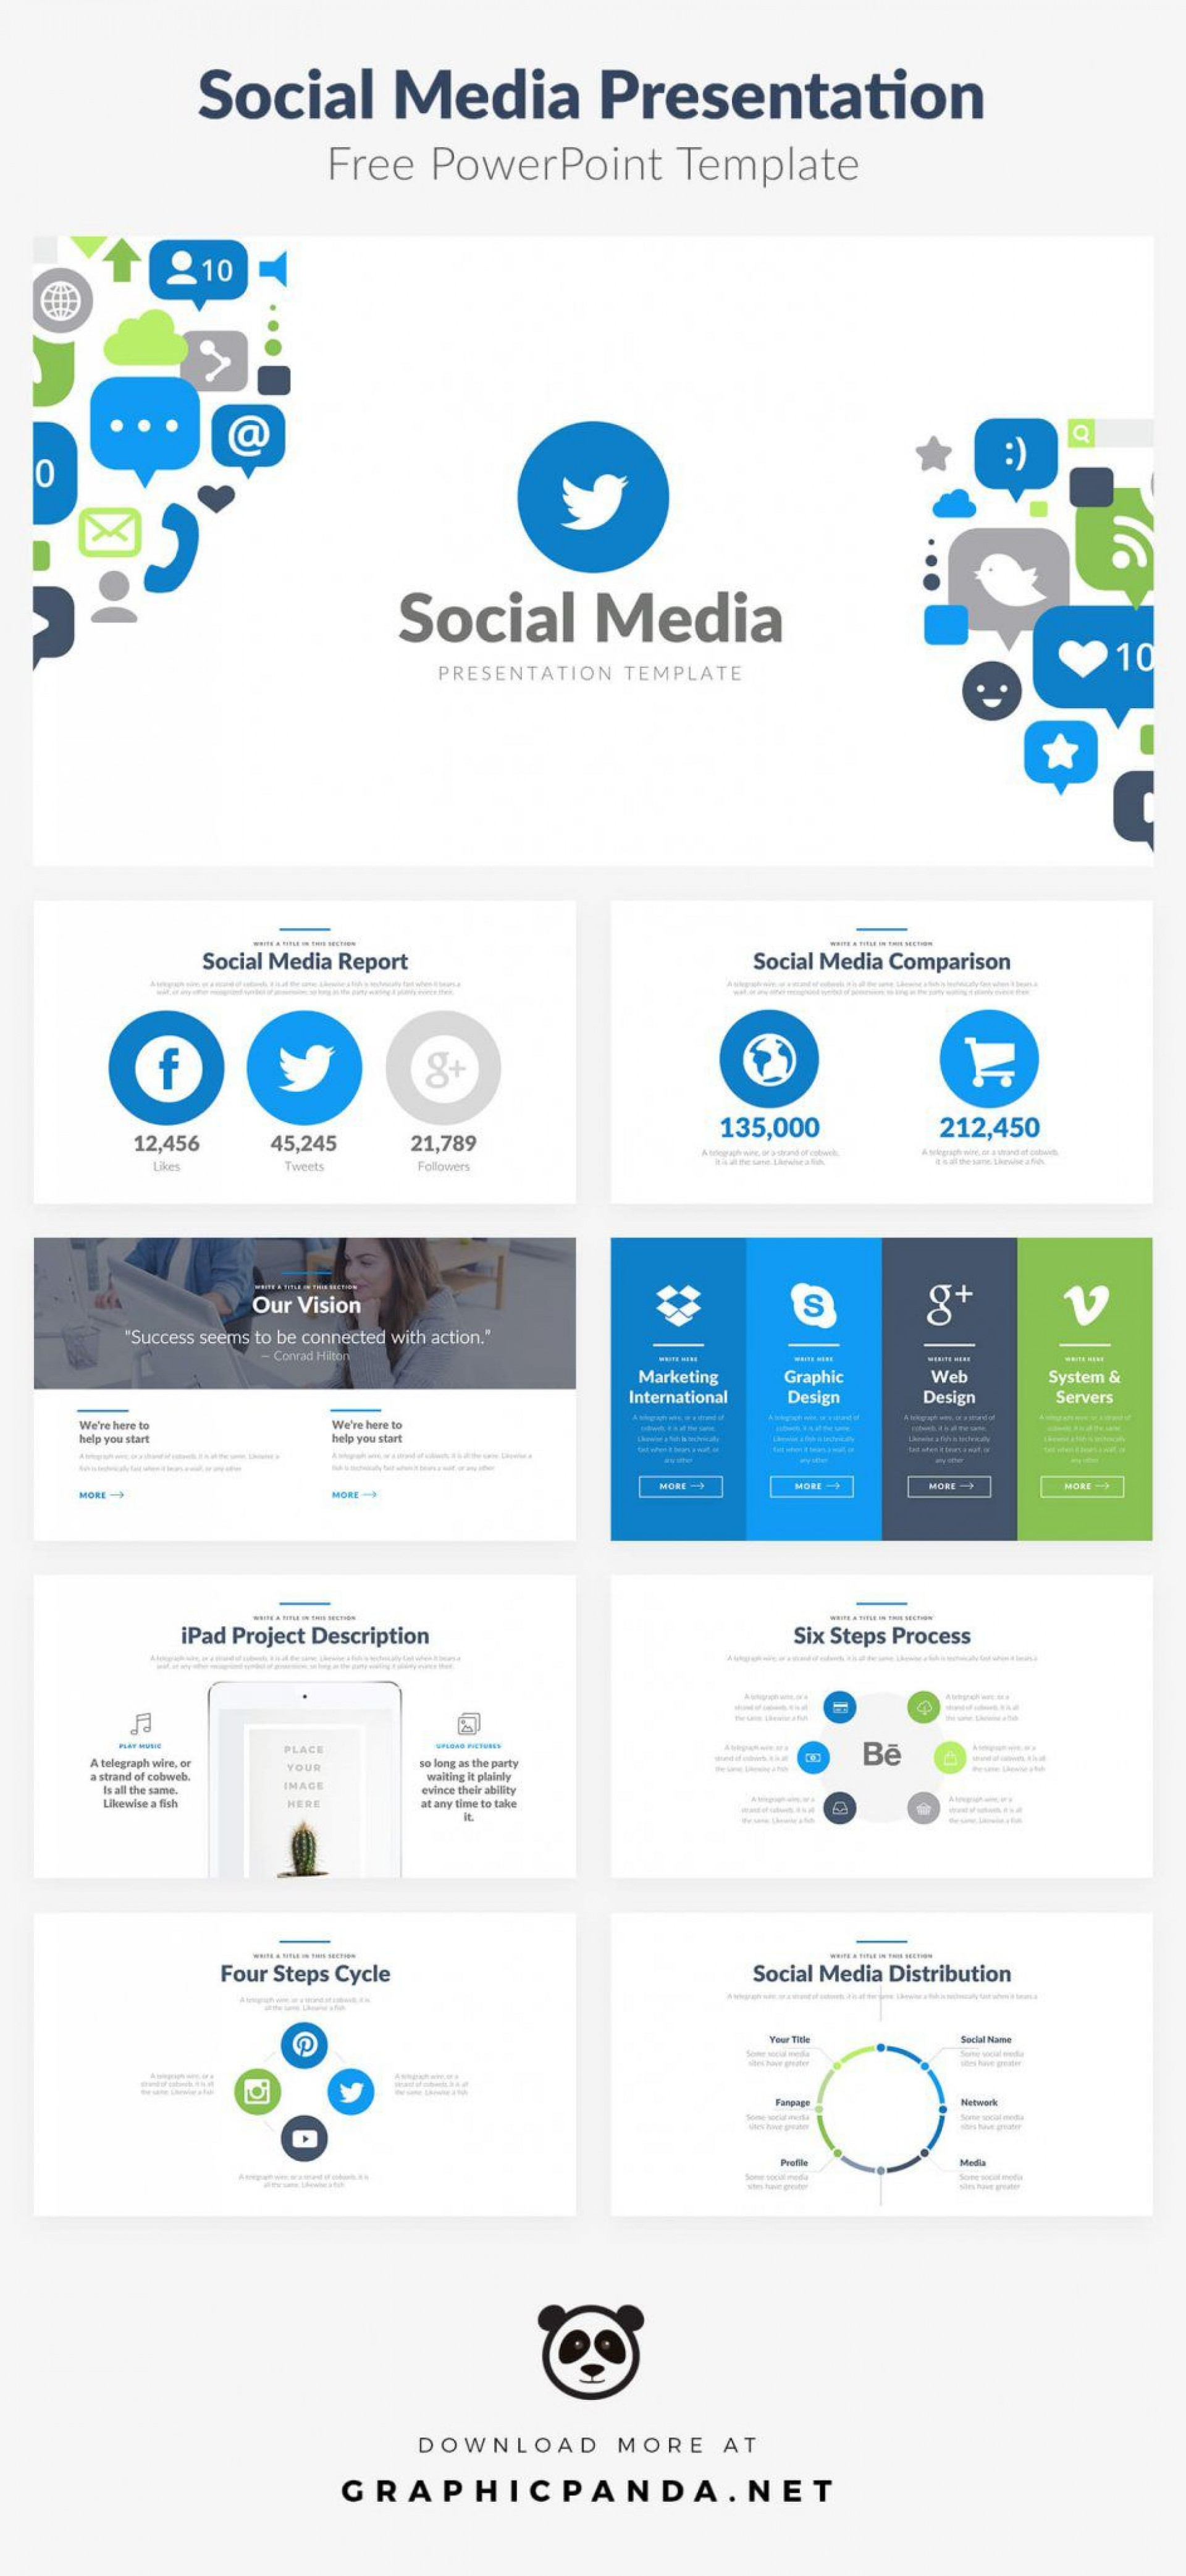 004 Unusual Social Media Powerpoint Template Free Inspiration  Strategy Trend 2017 - Report1920